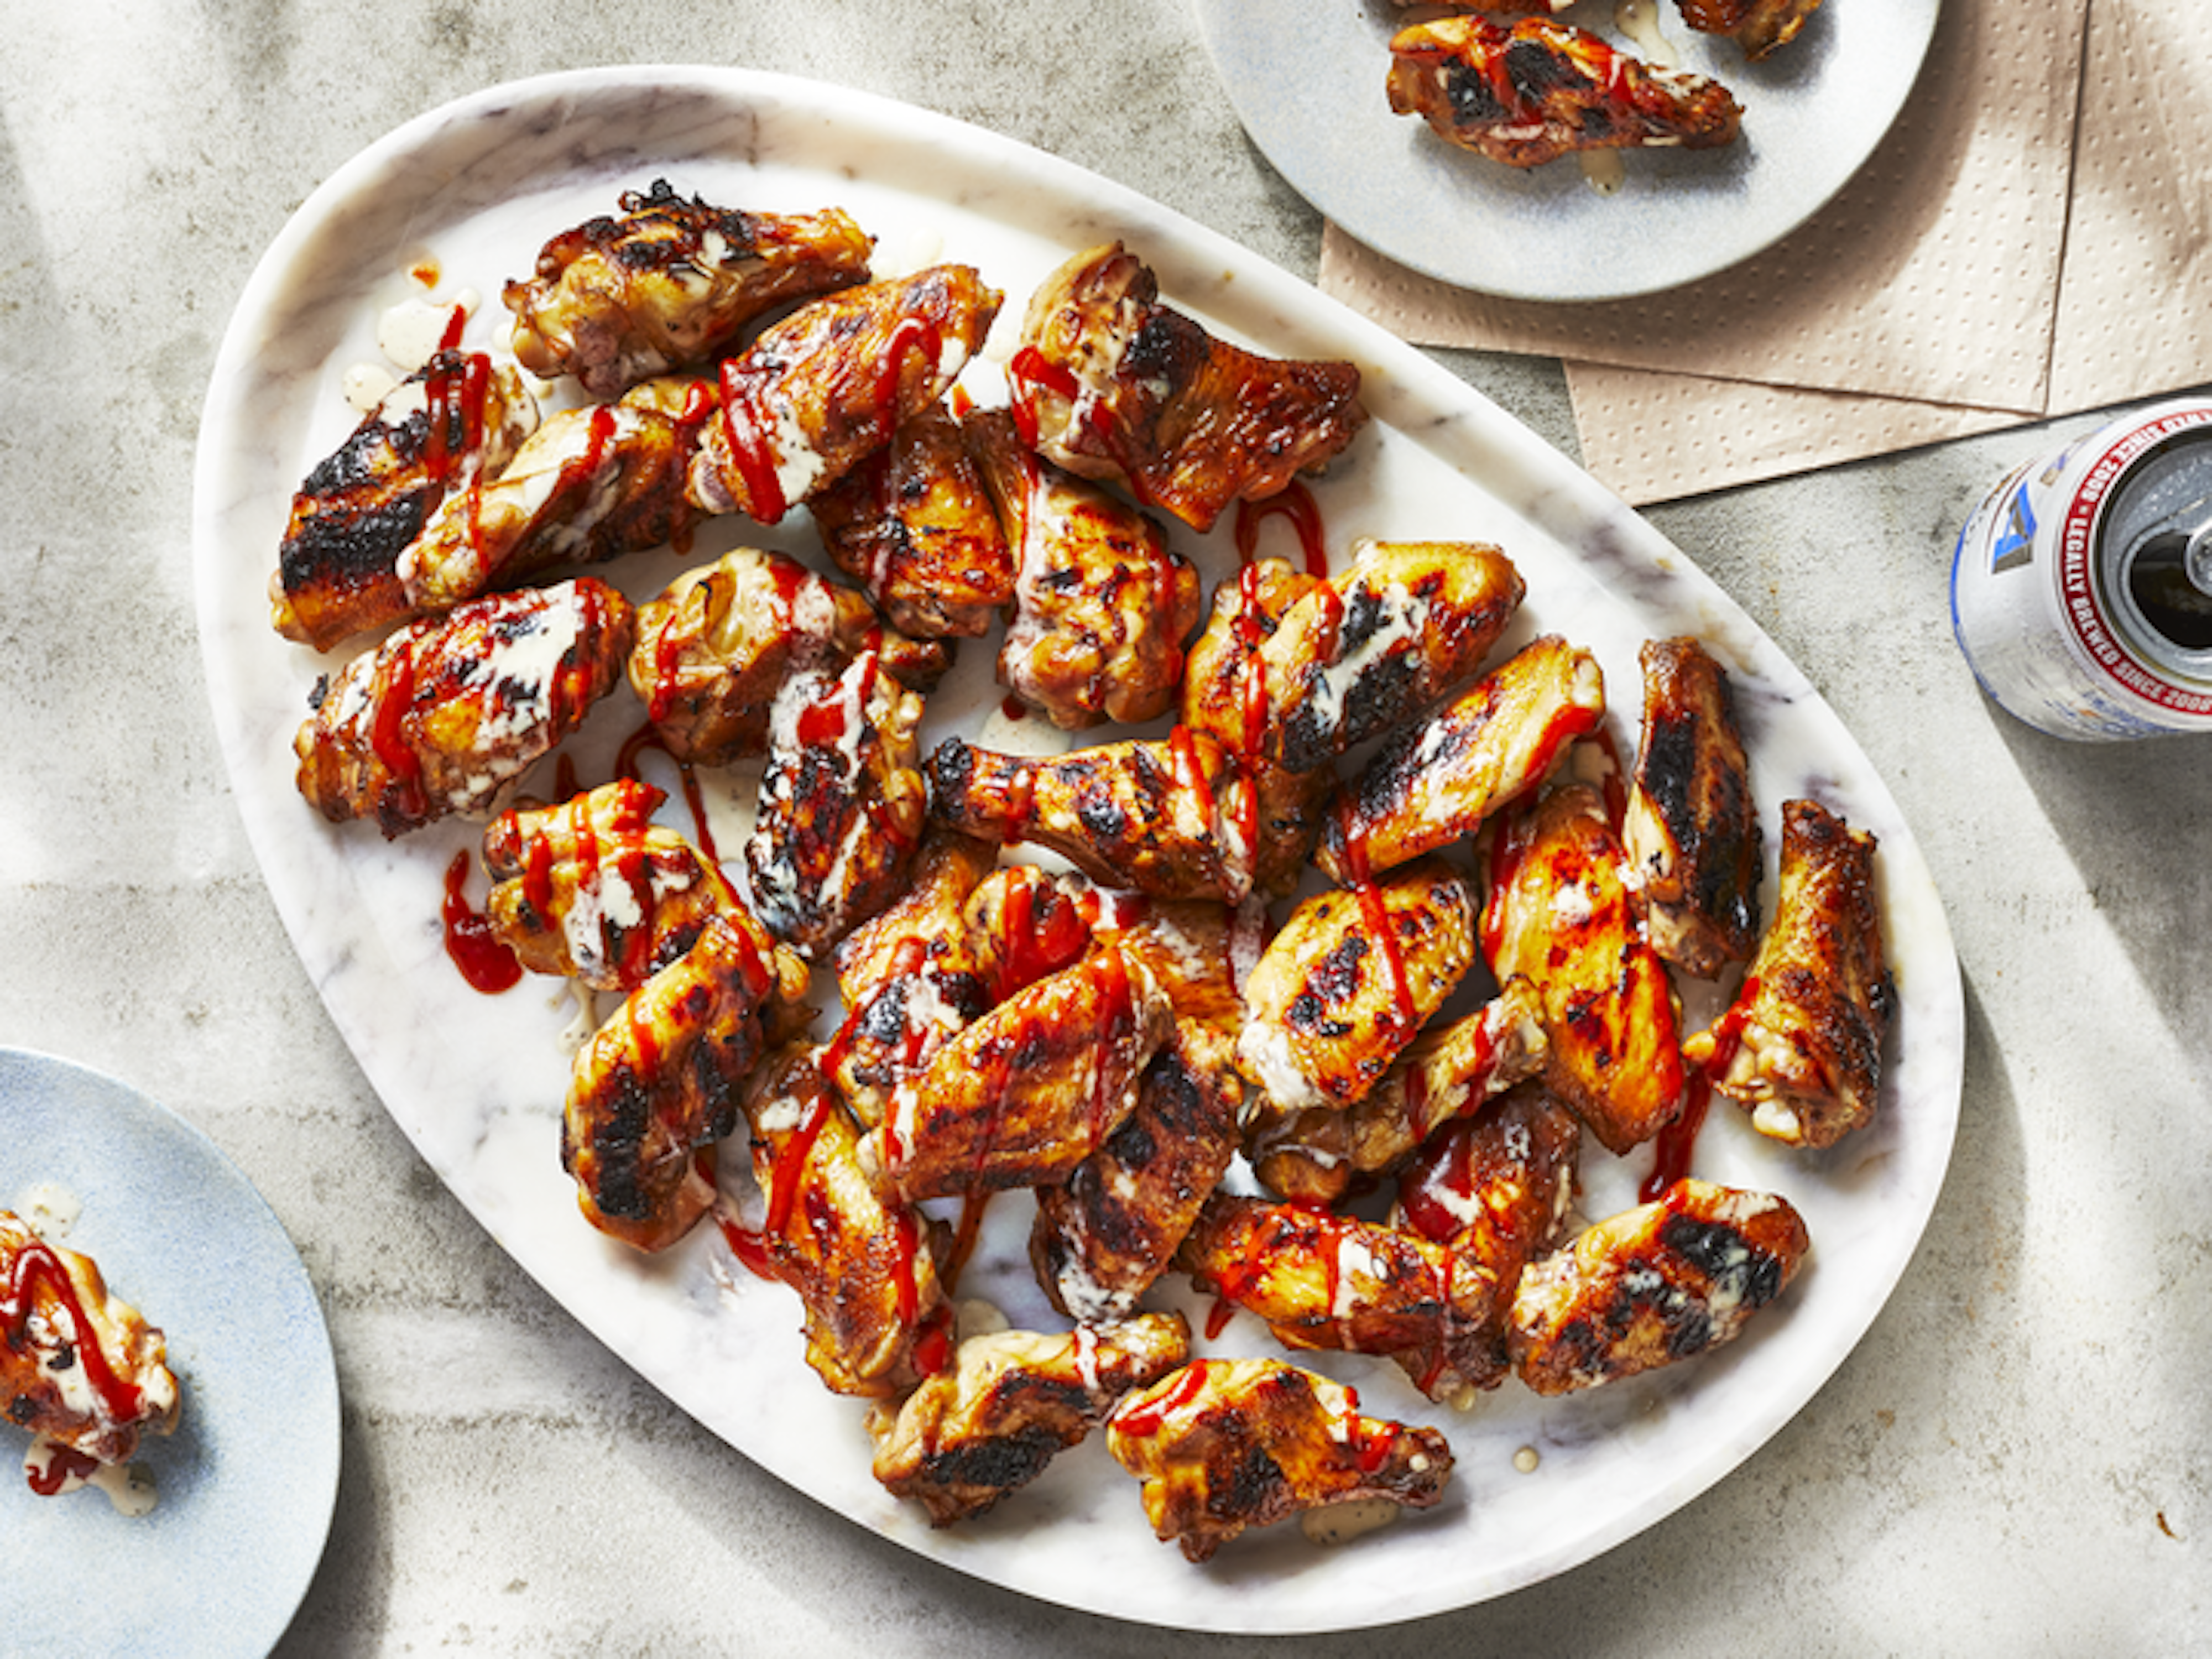 mr - Pellet Grill Sweet Tea Brined Chicken Wings With Double BBQ Sauce Image